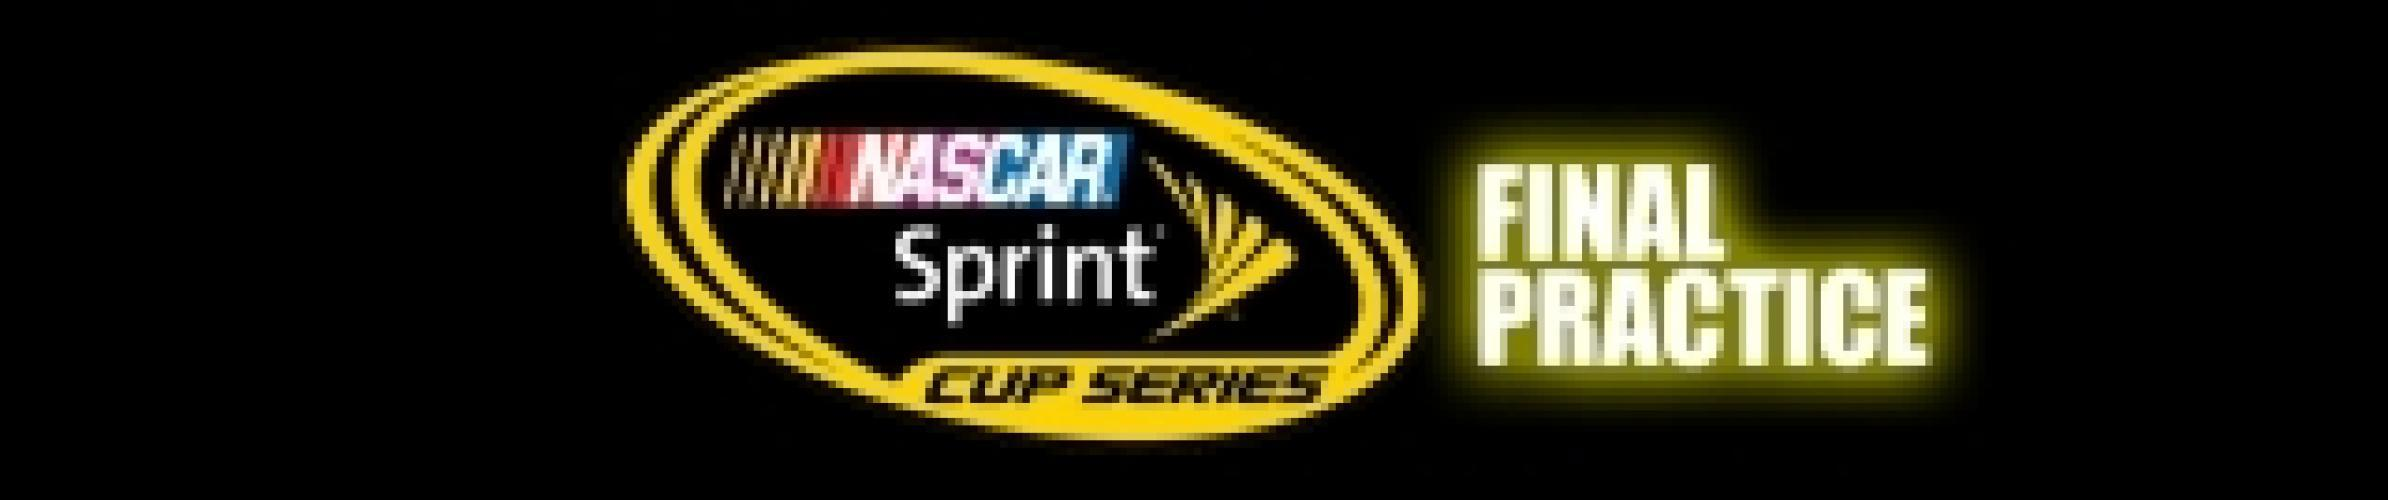 NASCAR Sprint Cup Series Final Practice next episode air date poster